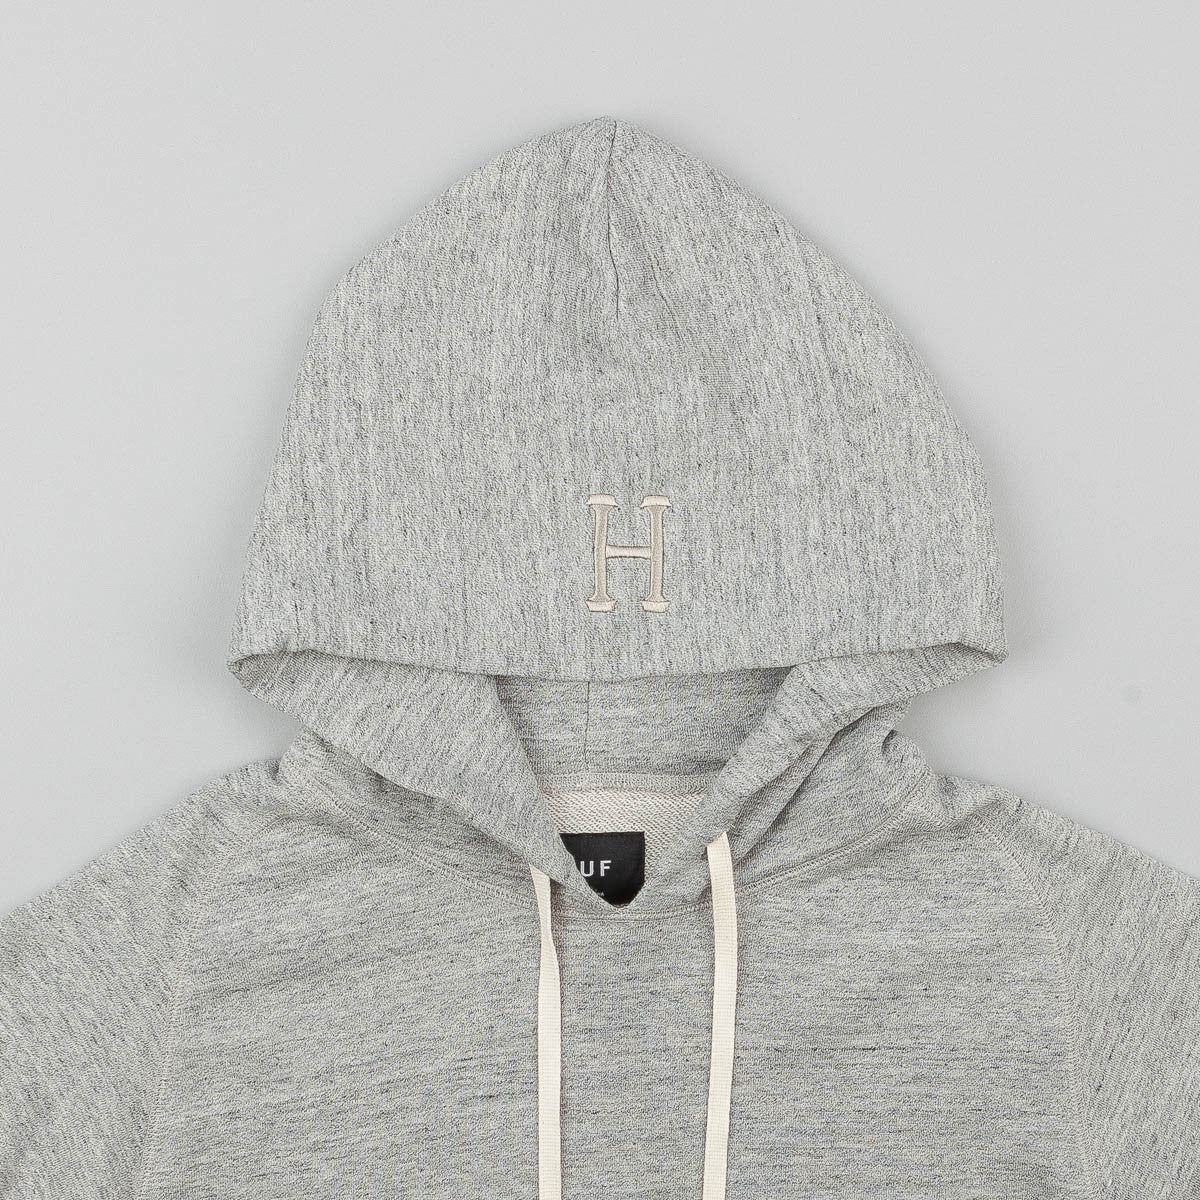 HUF Mil Spec Cadet Hooded Sweatshirt - Heather Grey